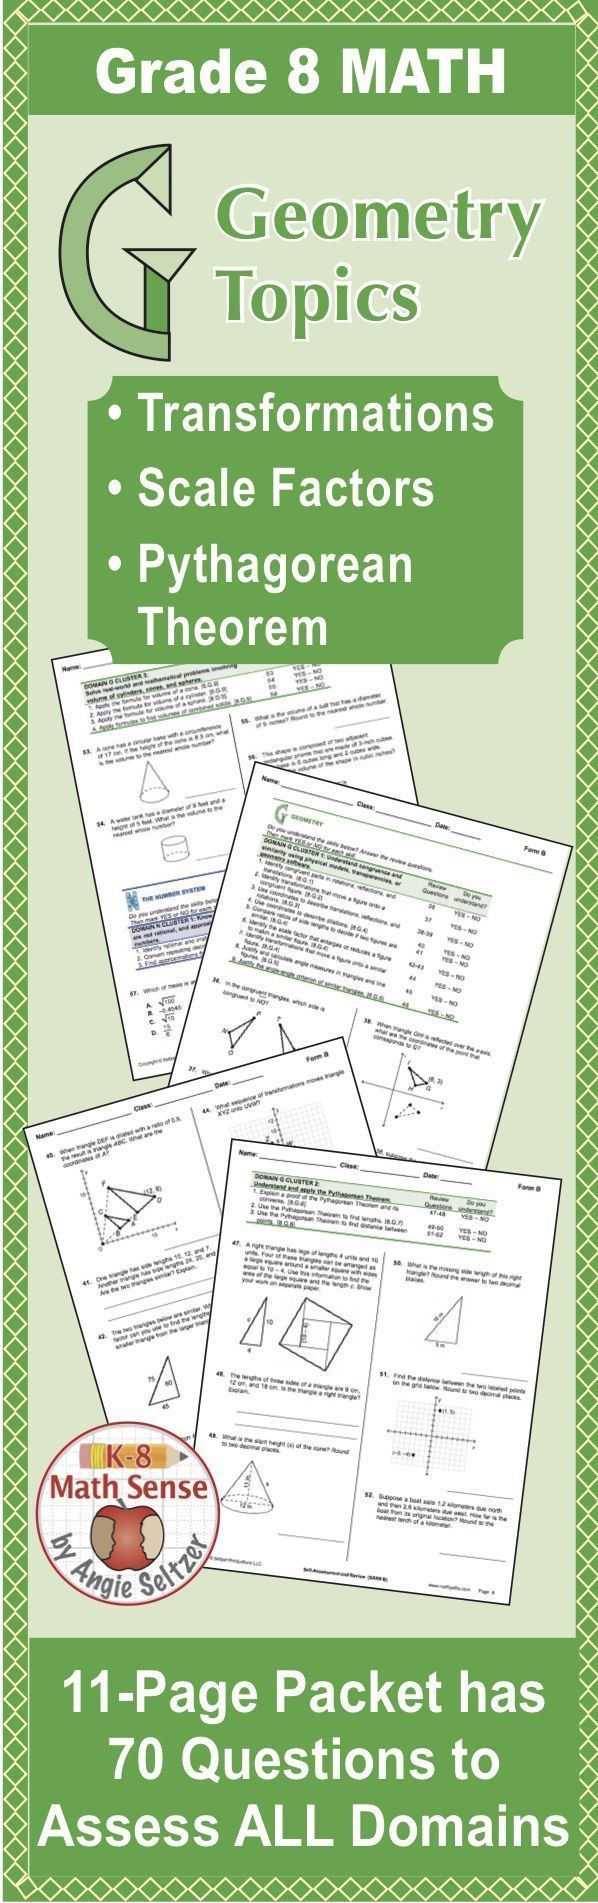 Grade 8 CCSS Math SelfAssessment and Review Packet Form